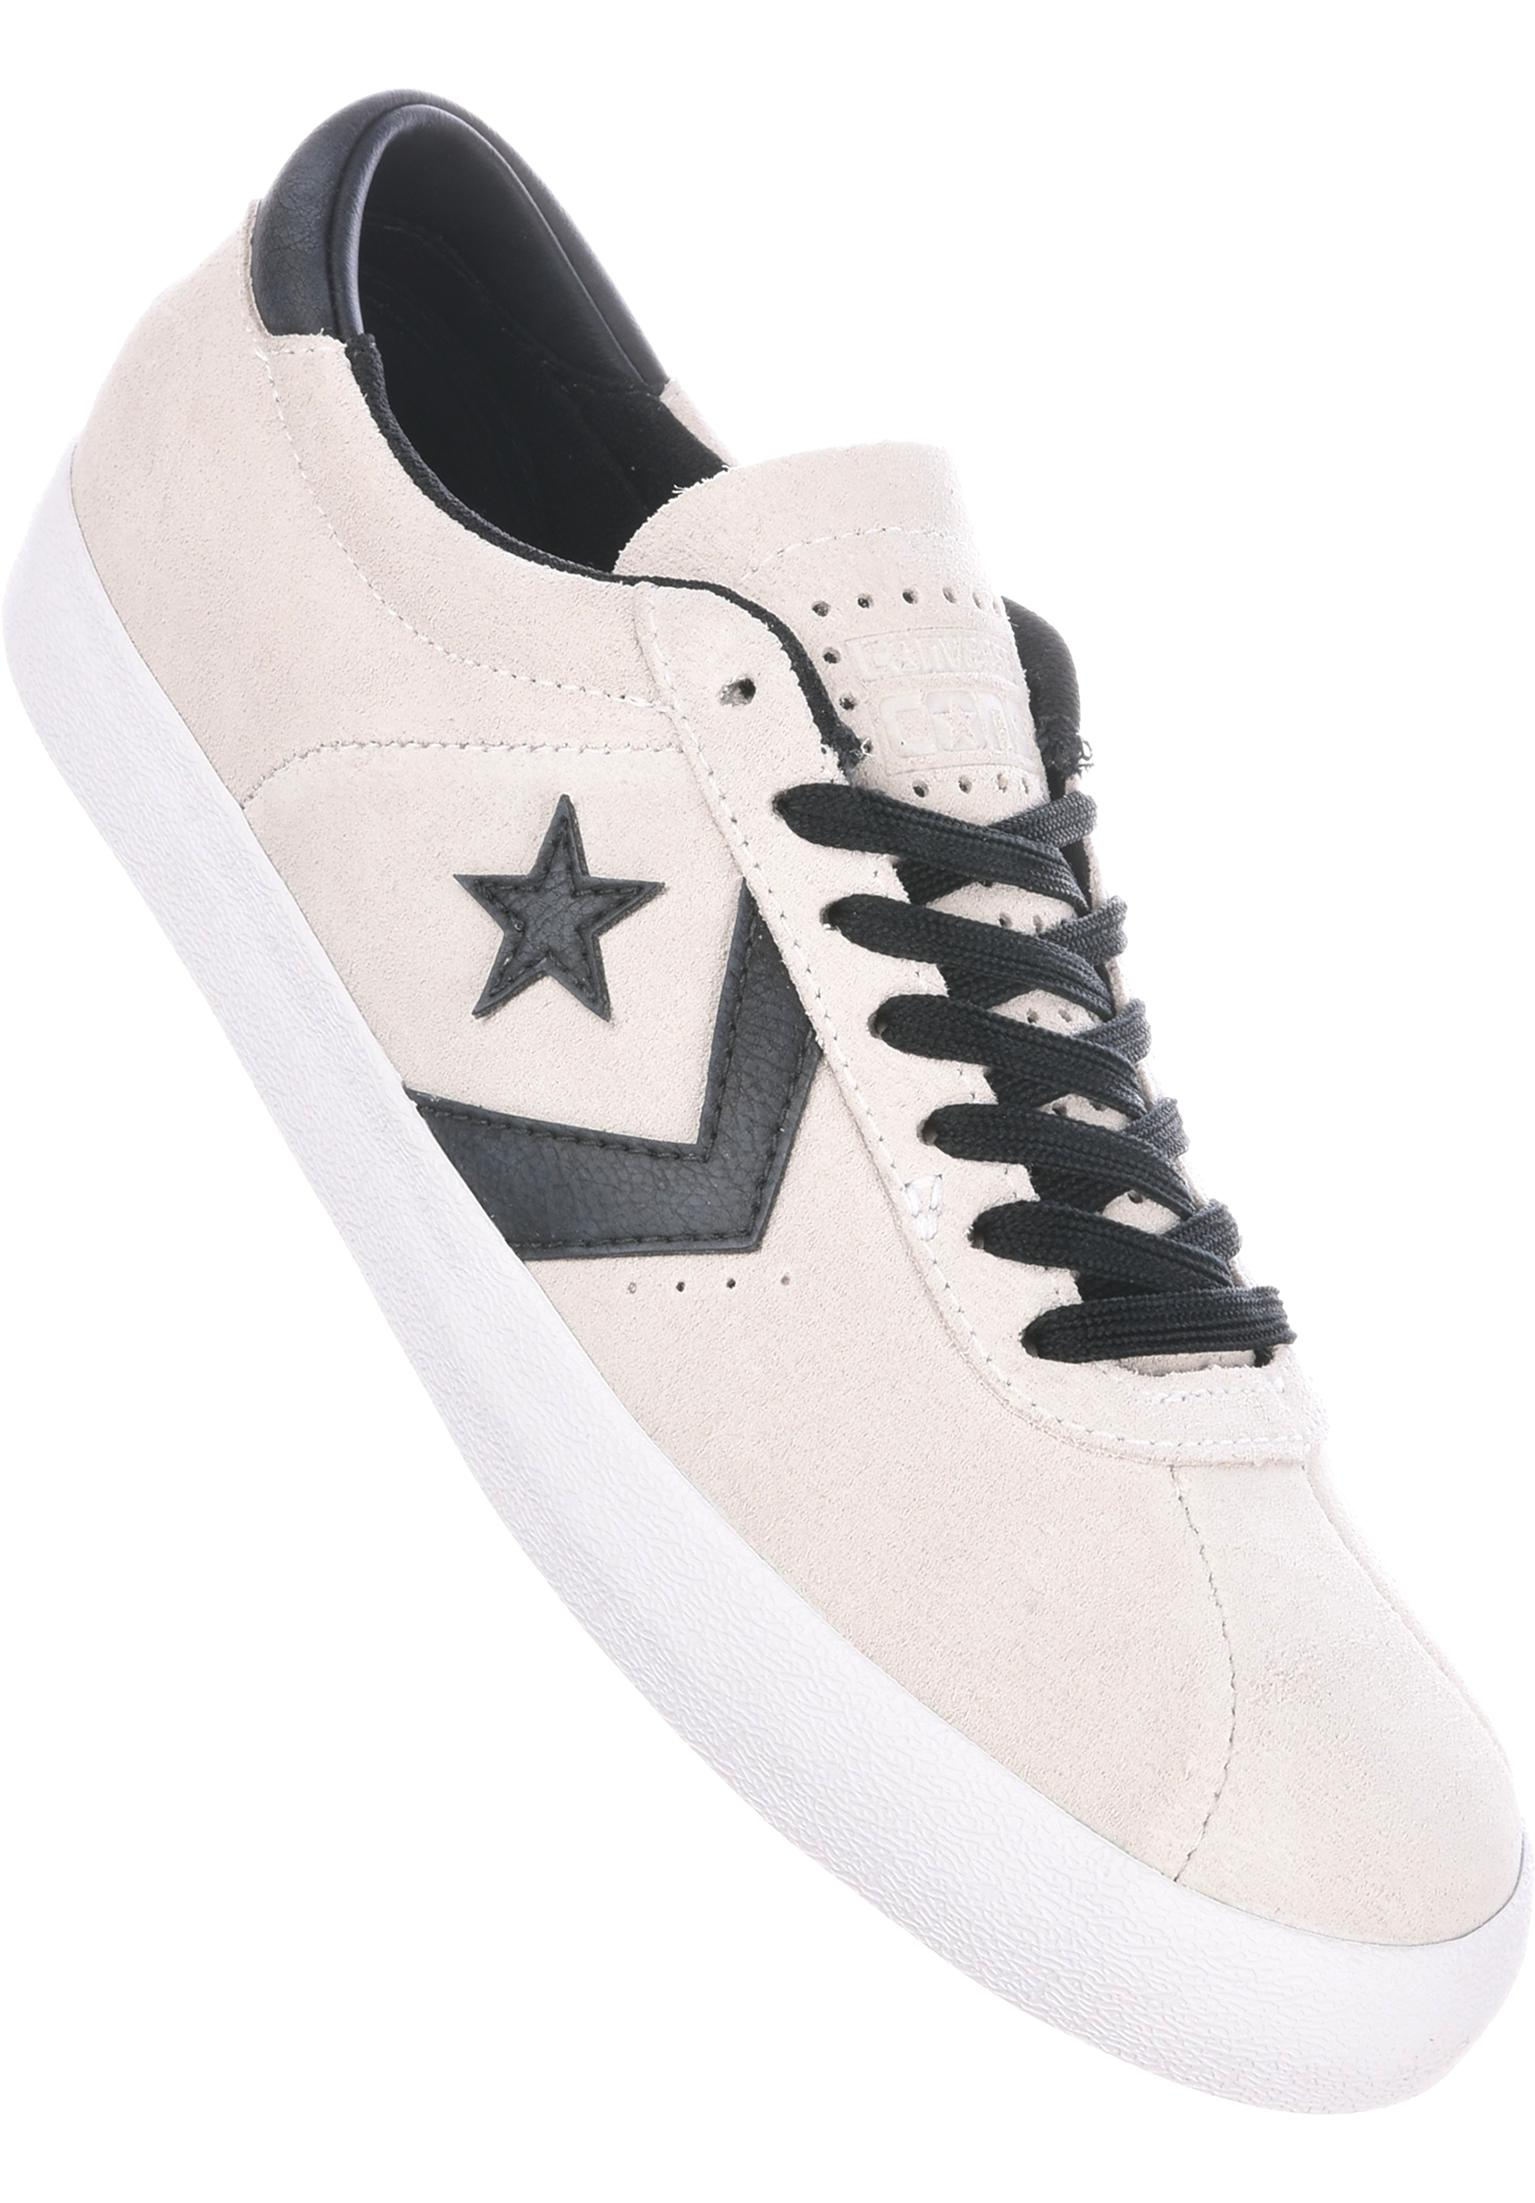 73a05272f25 Breakpoint Pro Ox Converse CONS All Shoes in white-black-black for Men